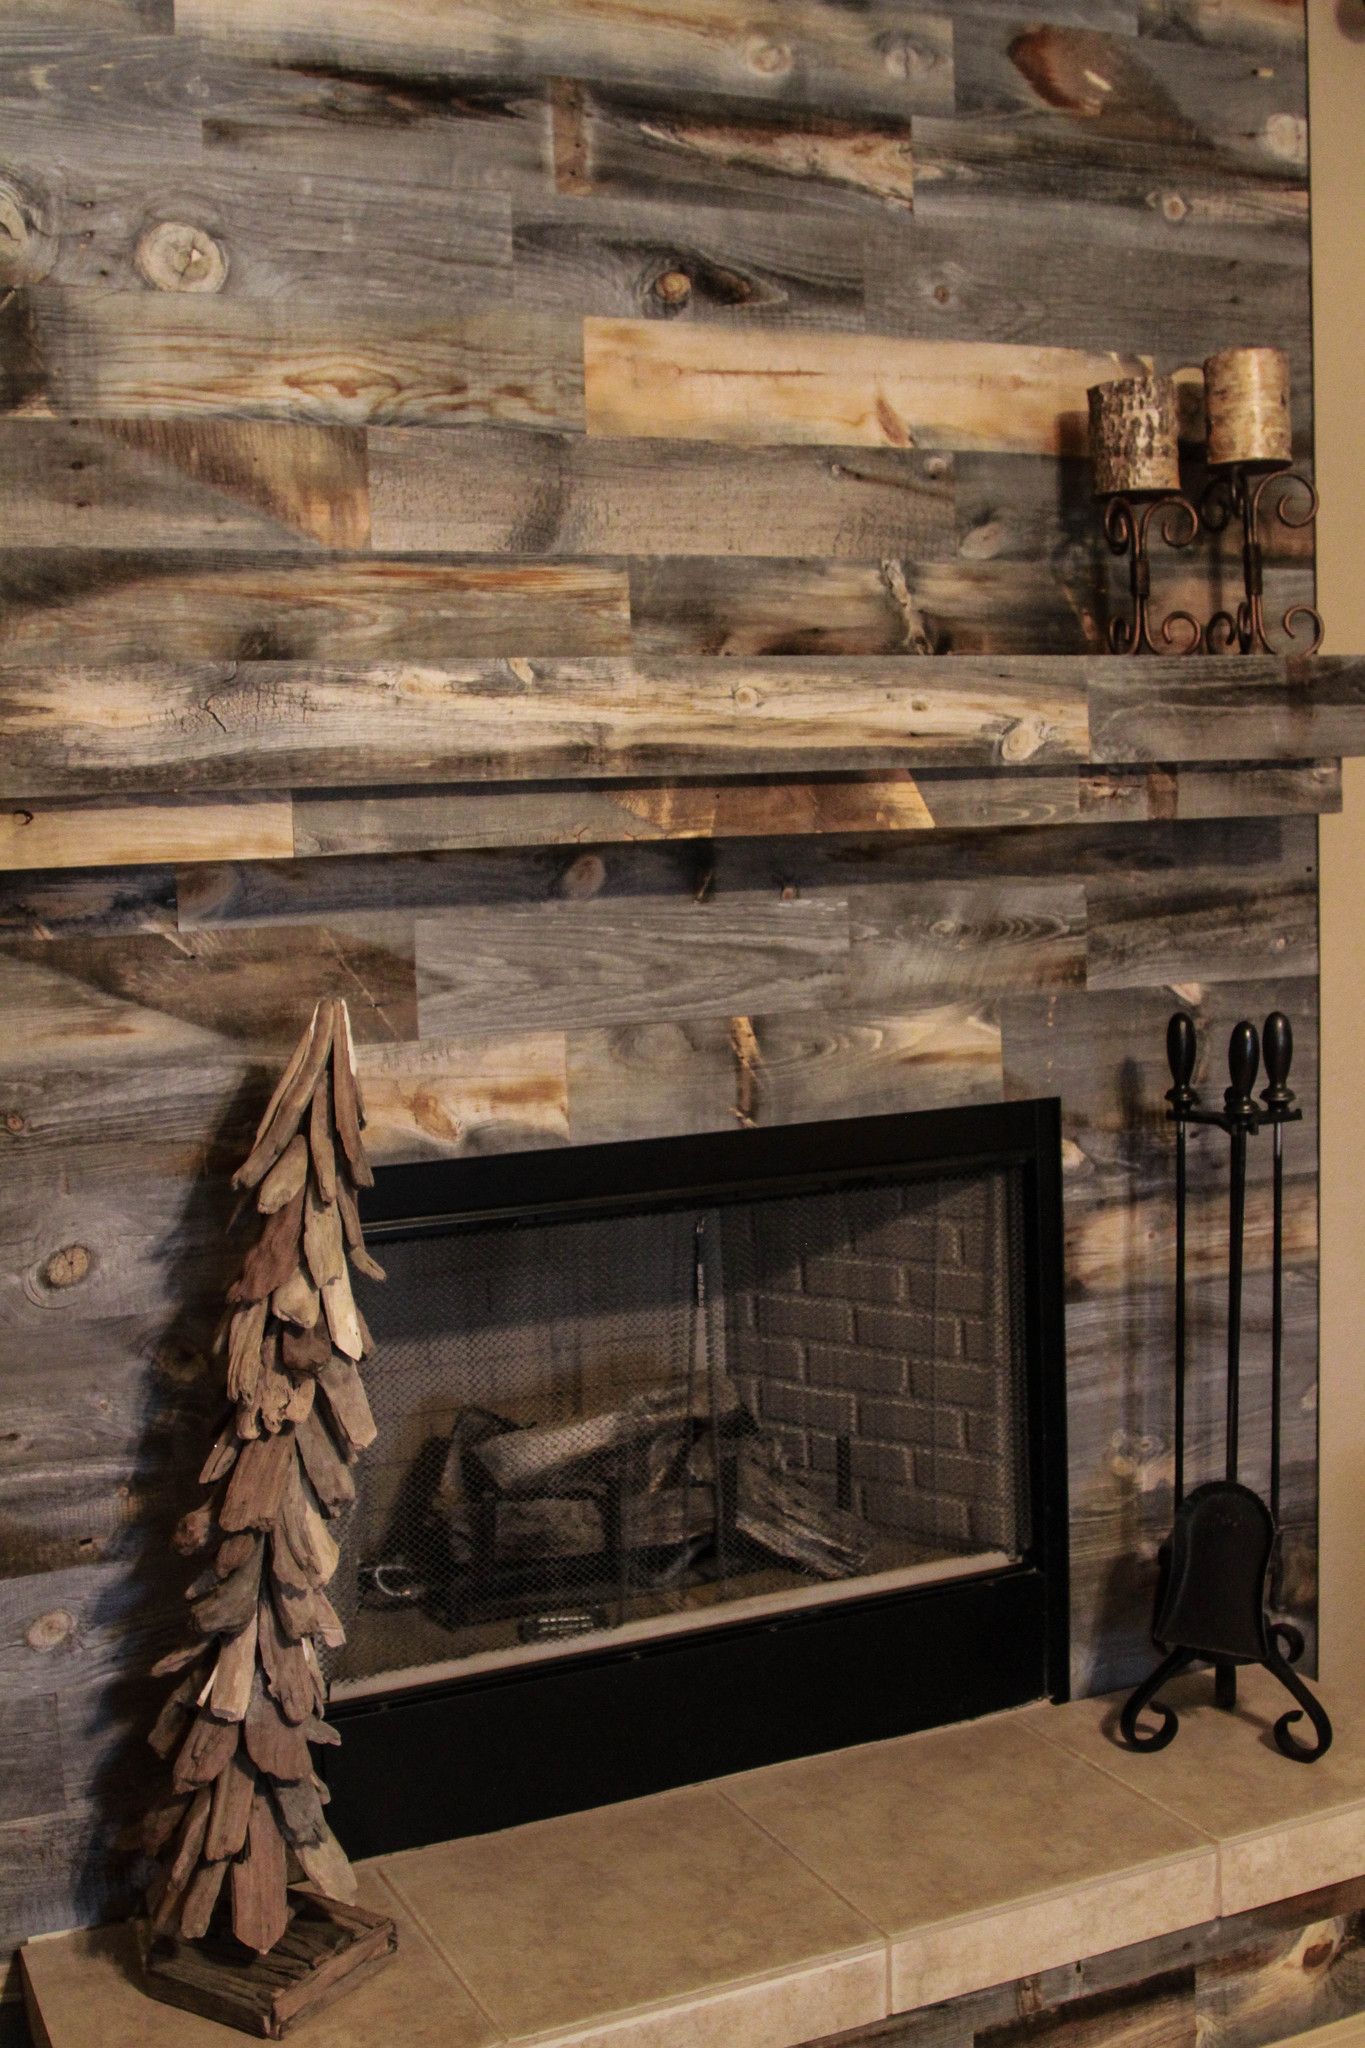 Looking for a small weekend project to complete over the weekend? Take a peek at these fireplace designs using Stikwood's wood wall planking.